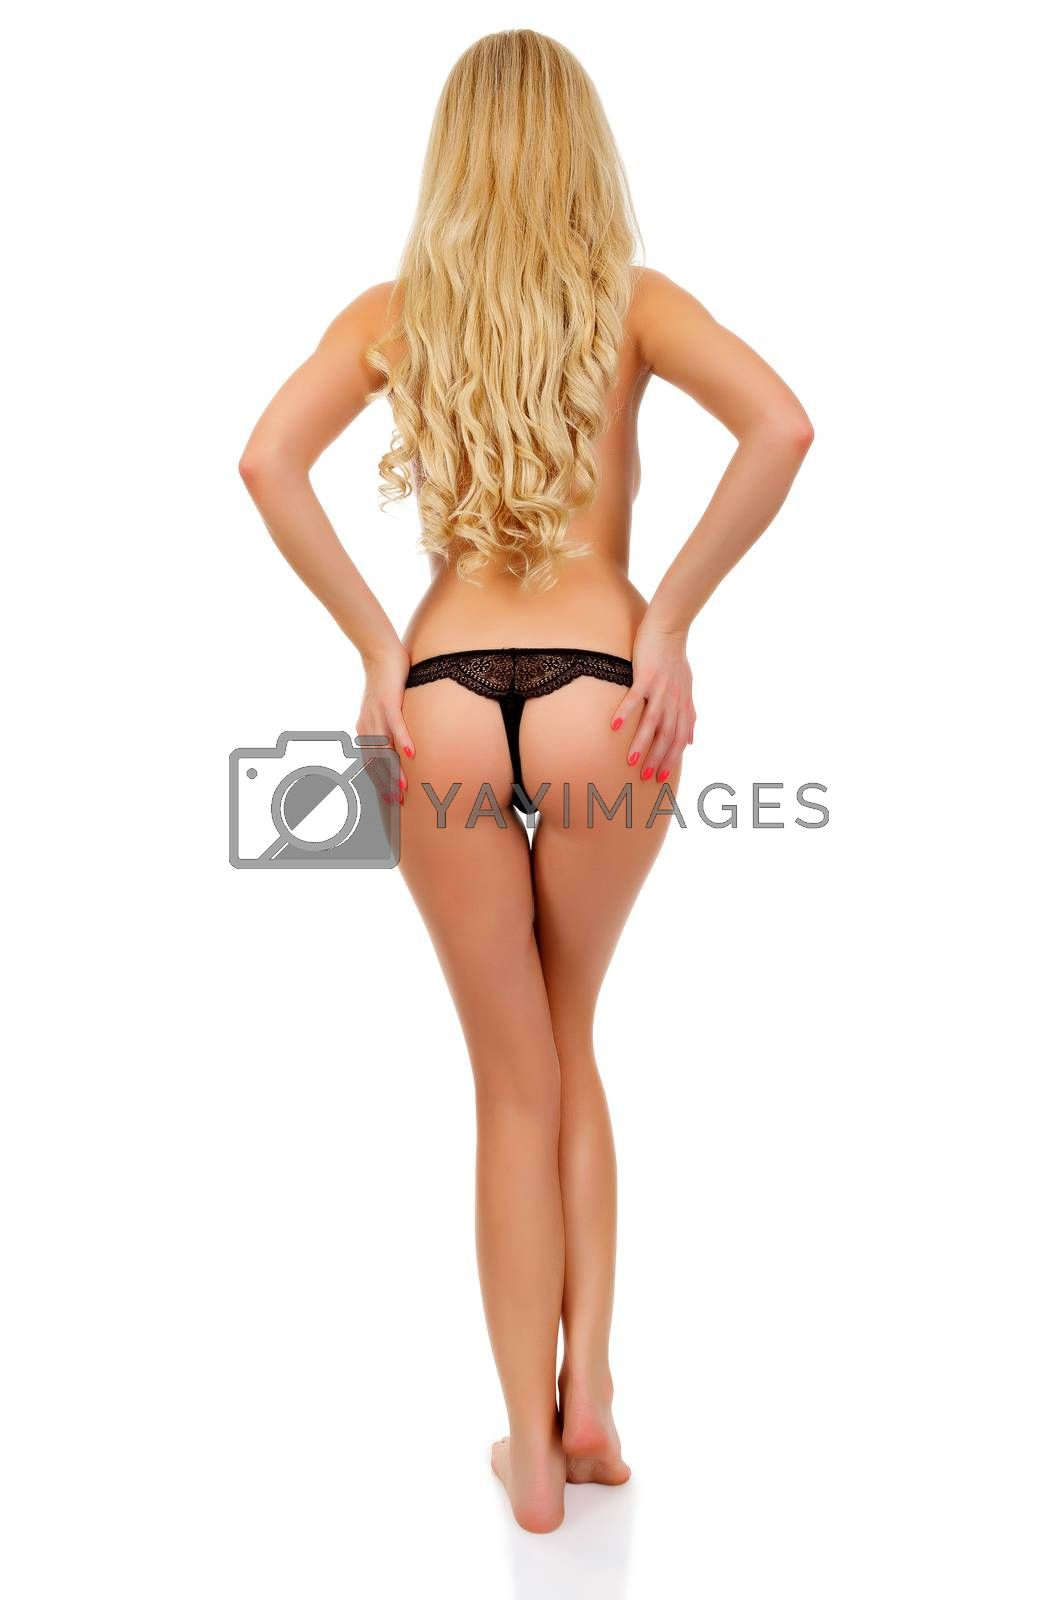 Sexy woman with long blond hair posing, isolated on white background